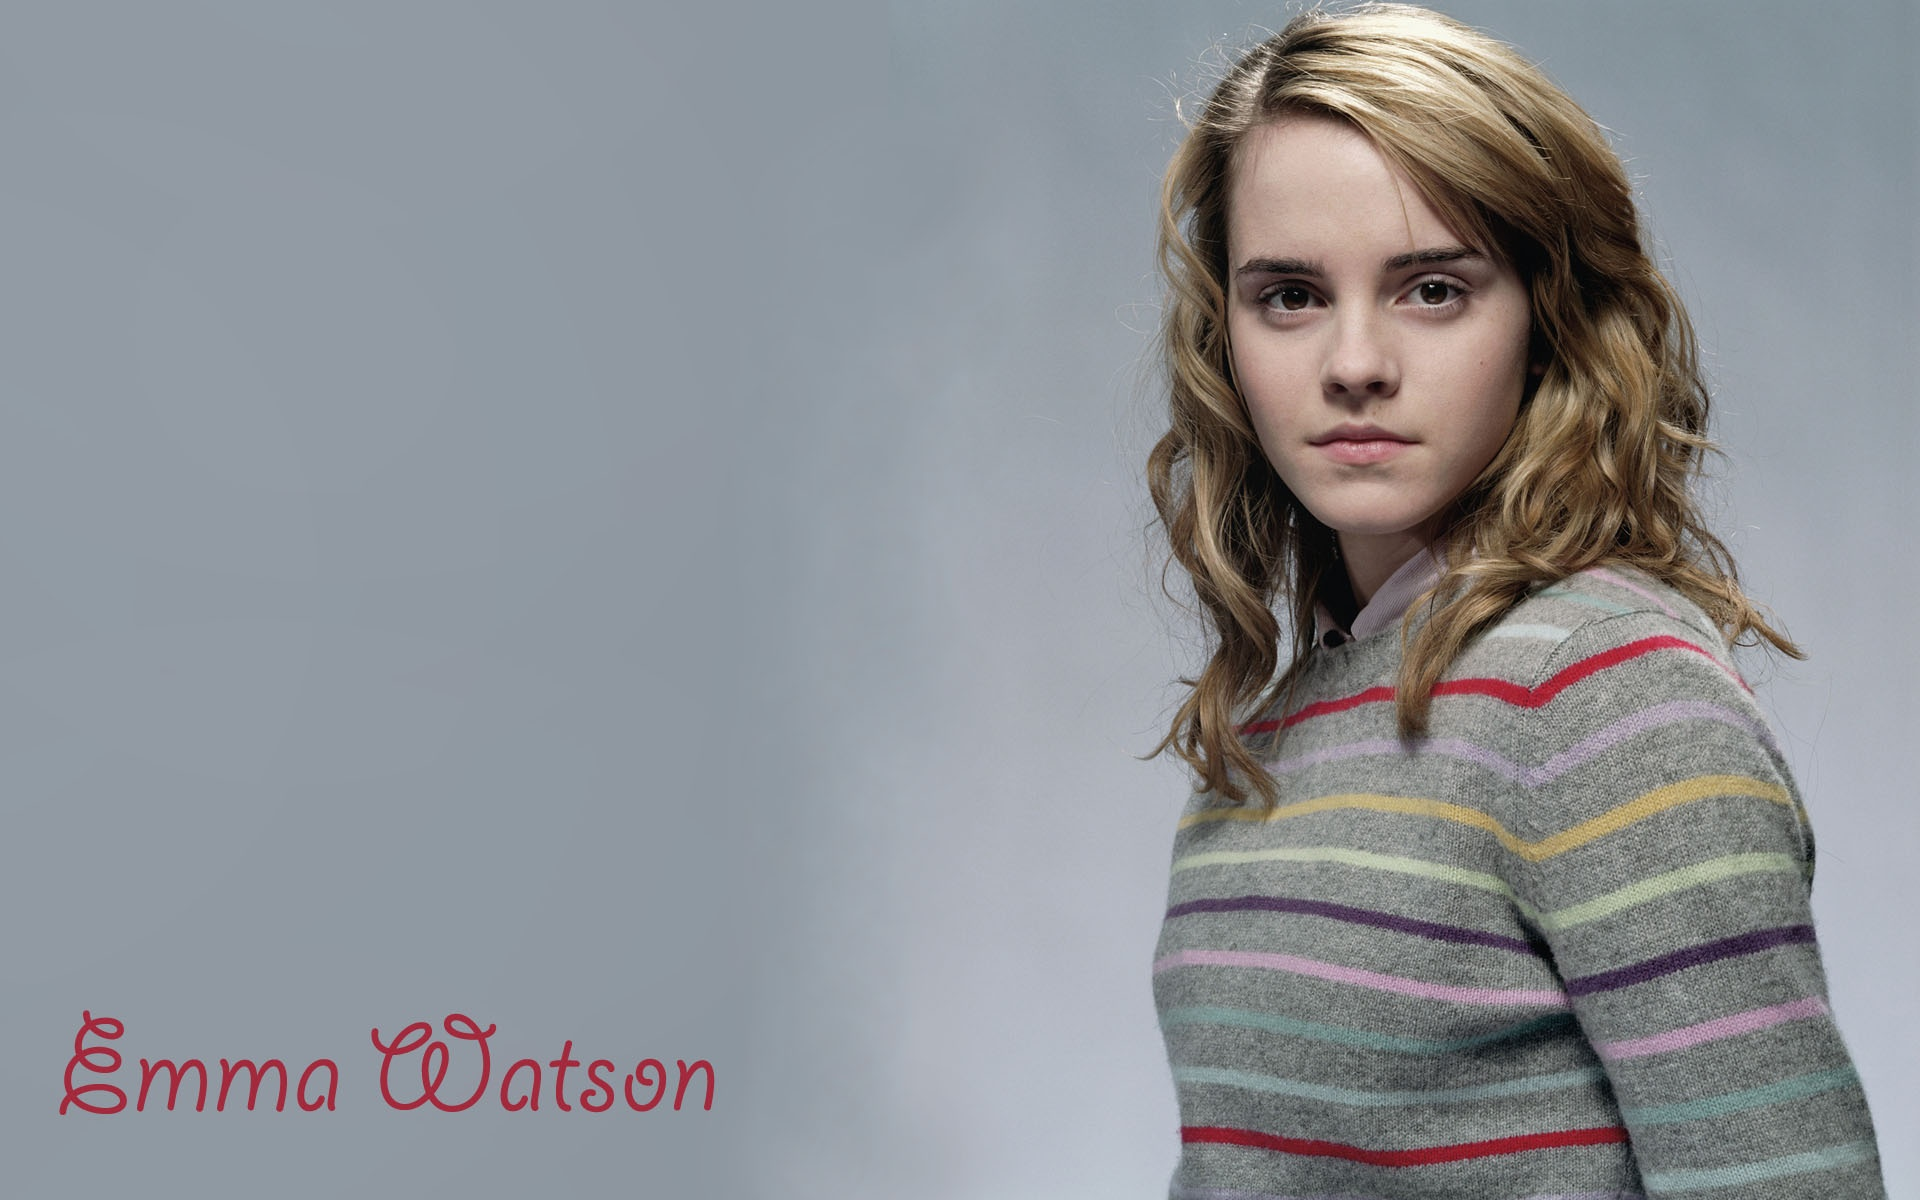 Wallpaper Emma Watson HD Celebrities Most Popular